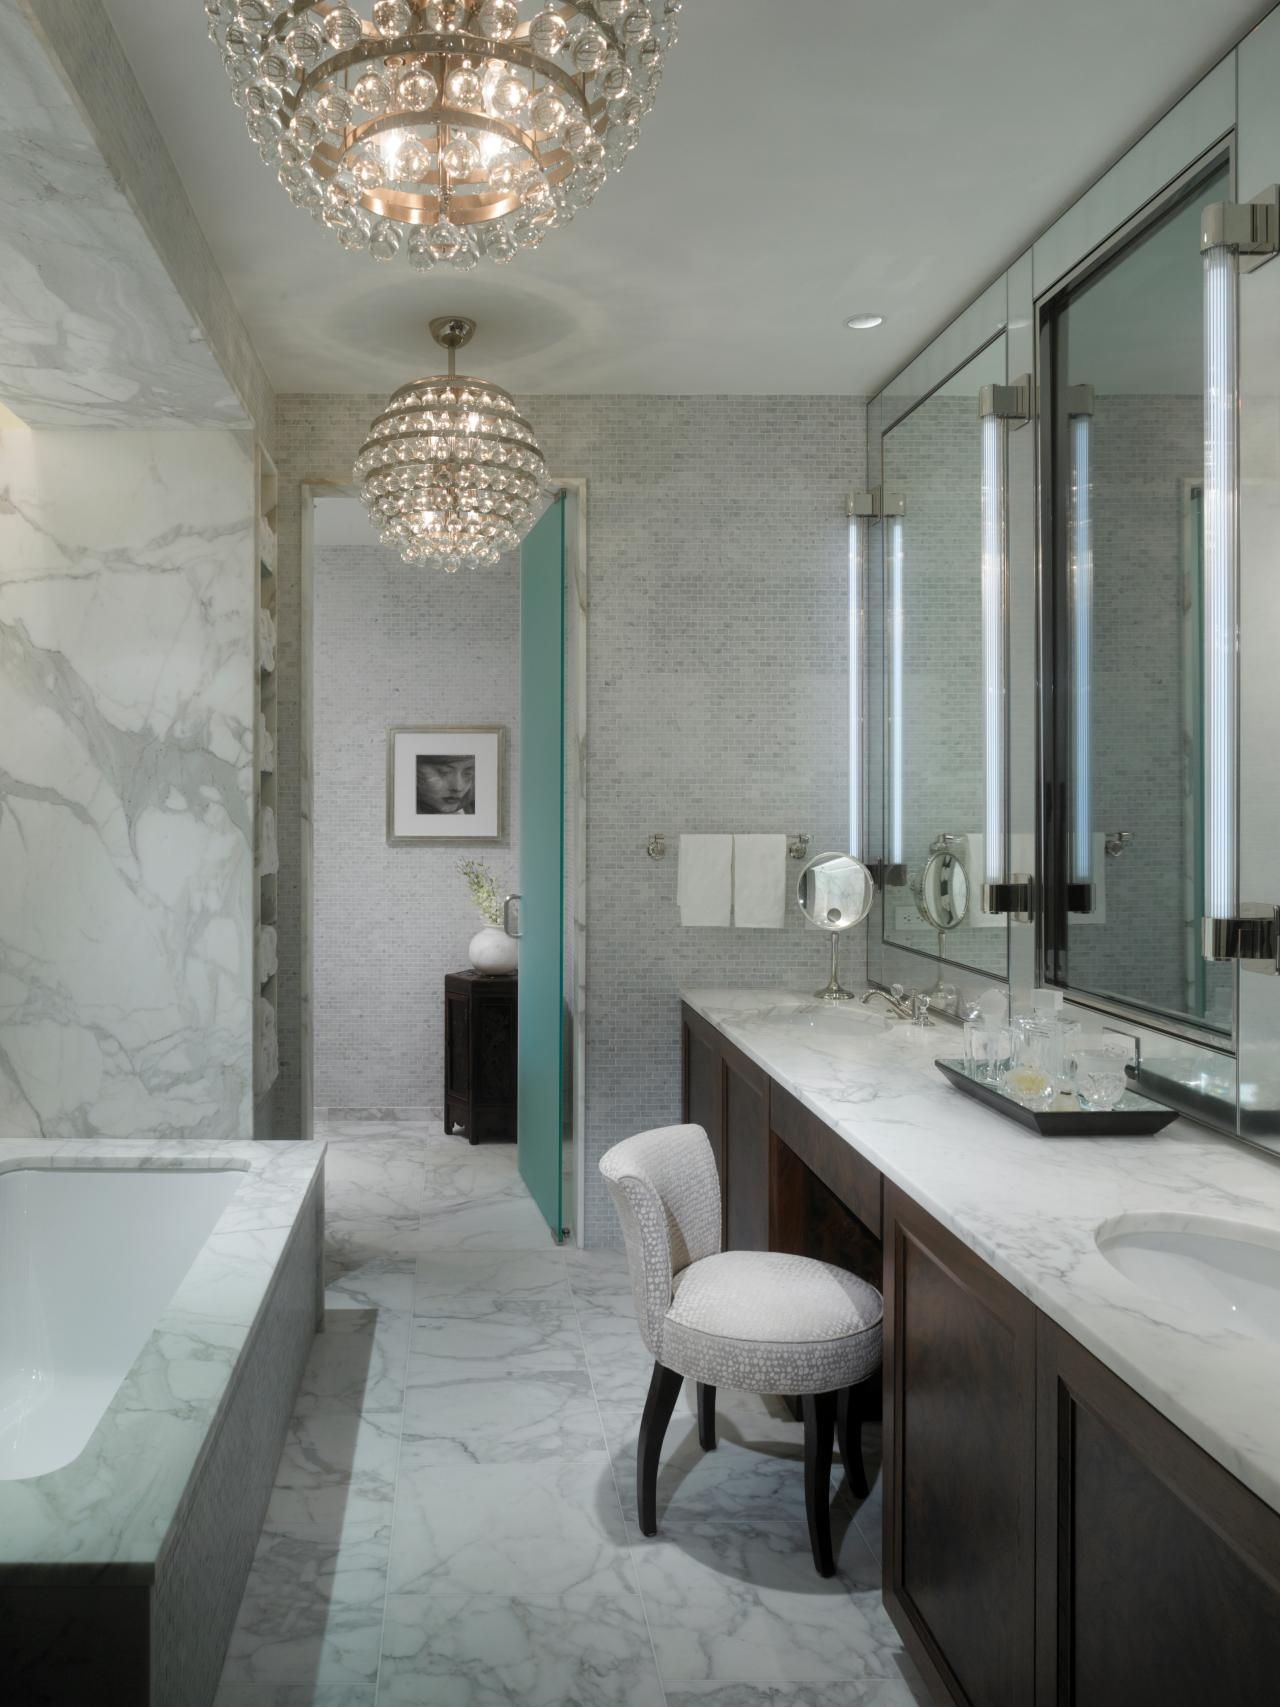 Bathroom Chandelier Lighting Bathroom Decorating Tips And Ideas In Bathroom Chandelier Wall Lights (Image 2 of 25)